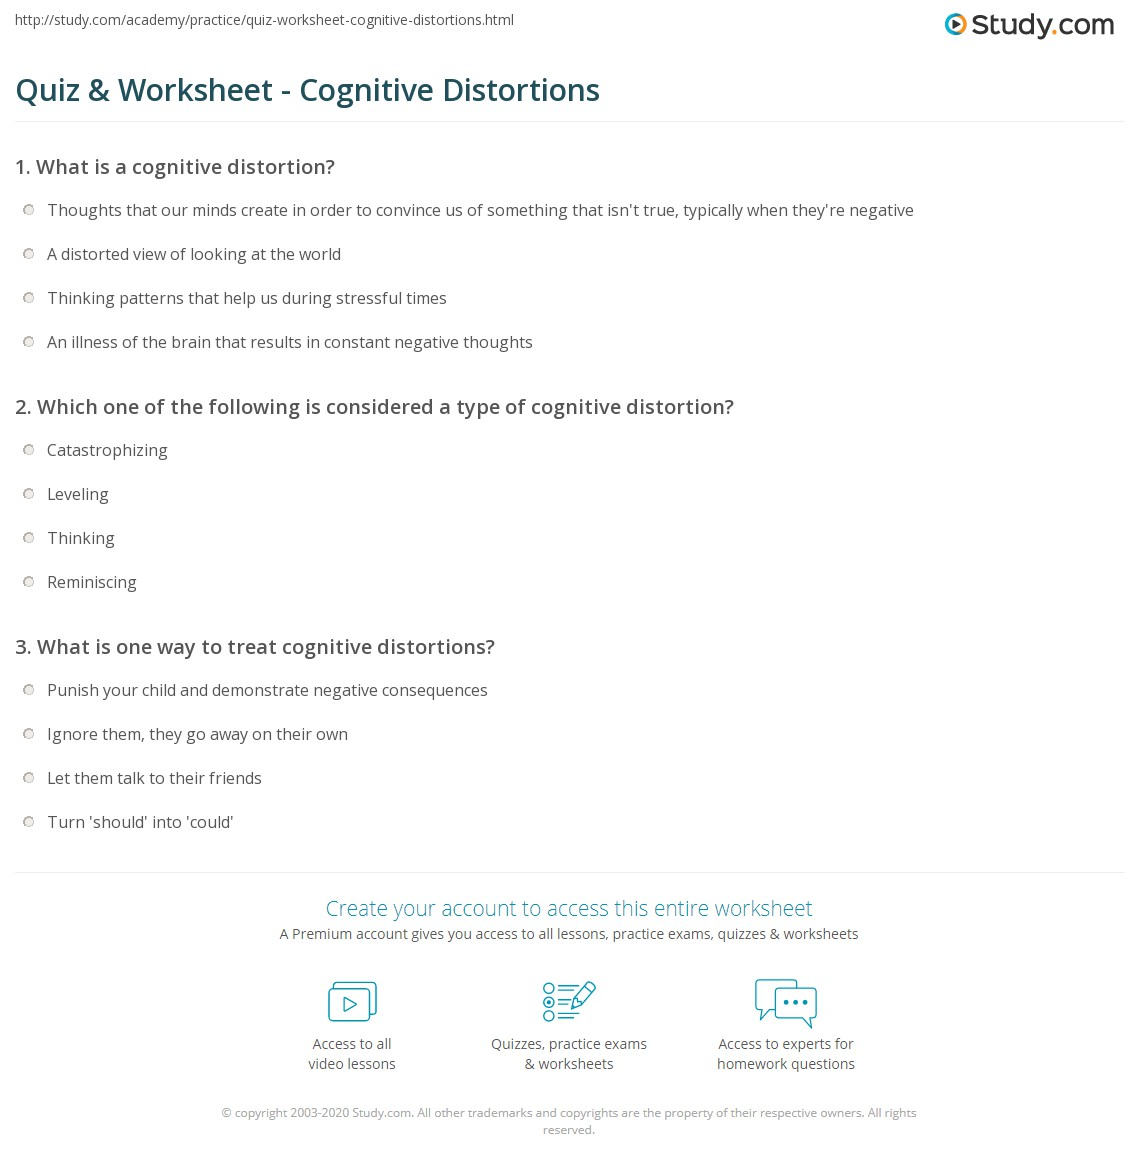 Quiz & Worksheet - Cognitive Distortions | Study.com